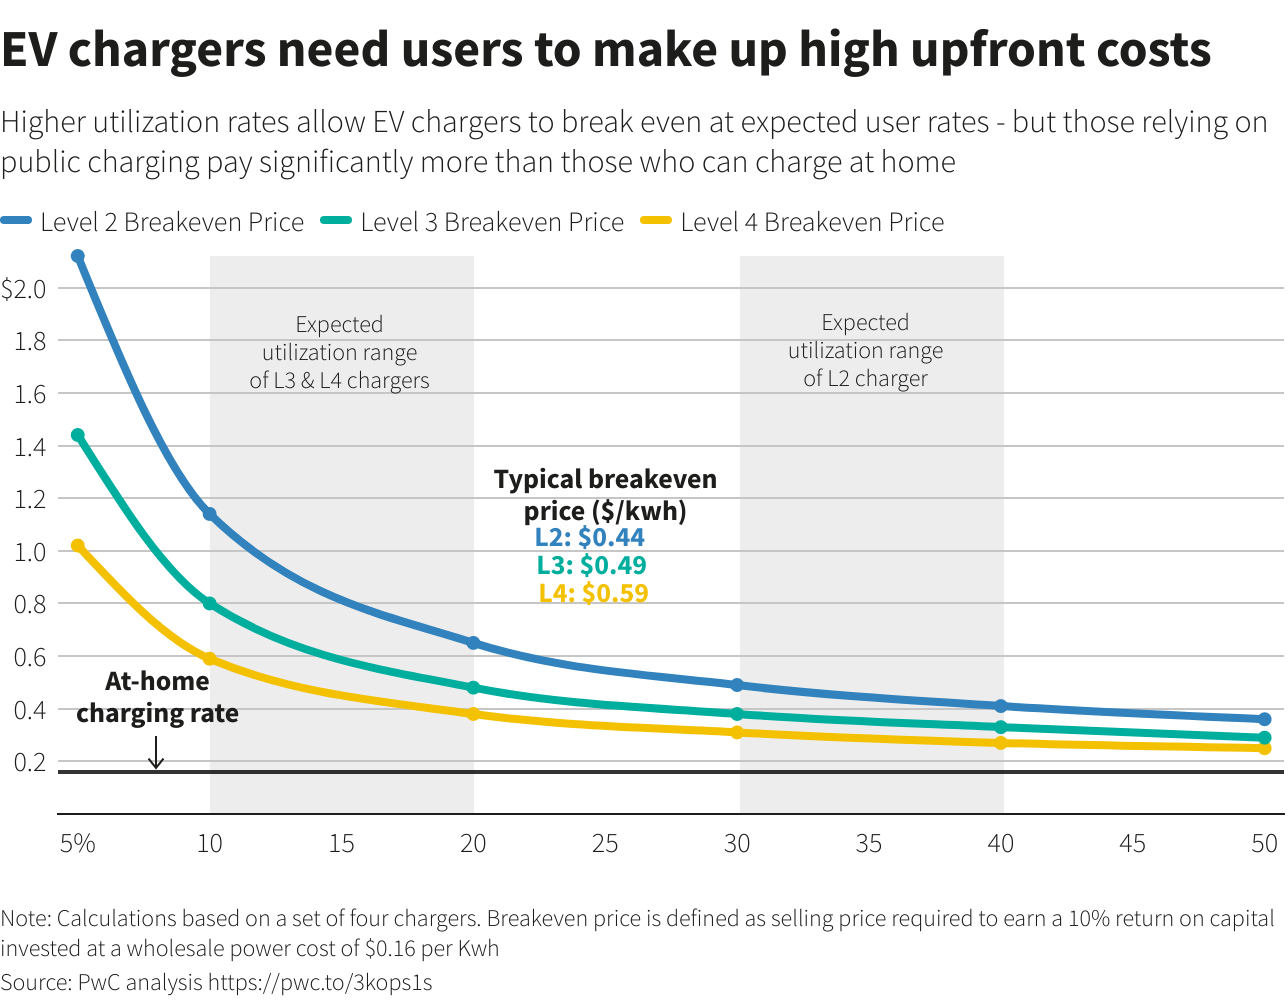 EV chargers need users to make up high upfront costs